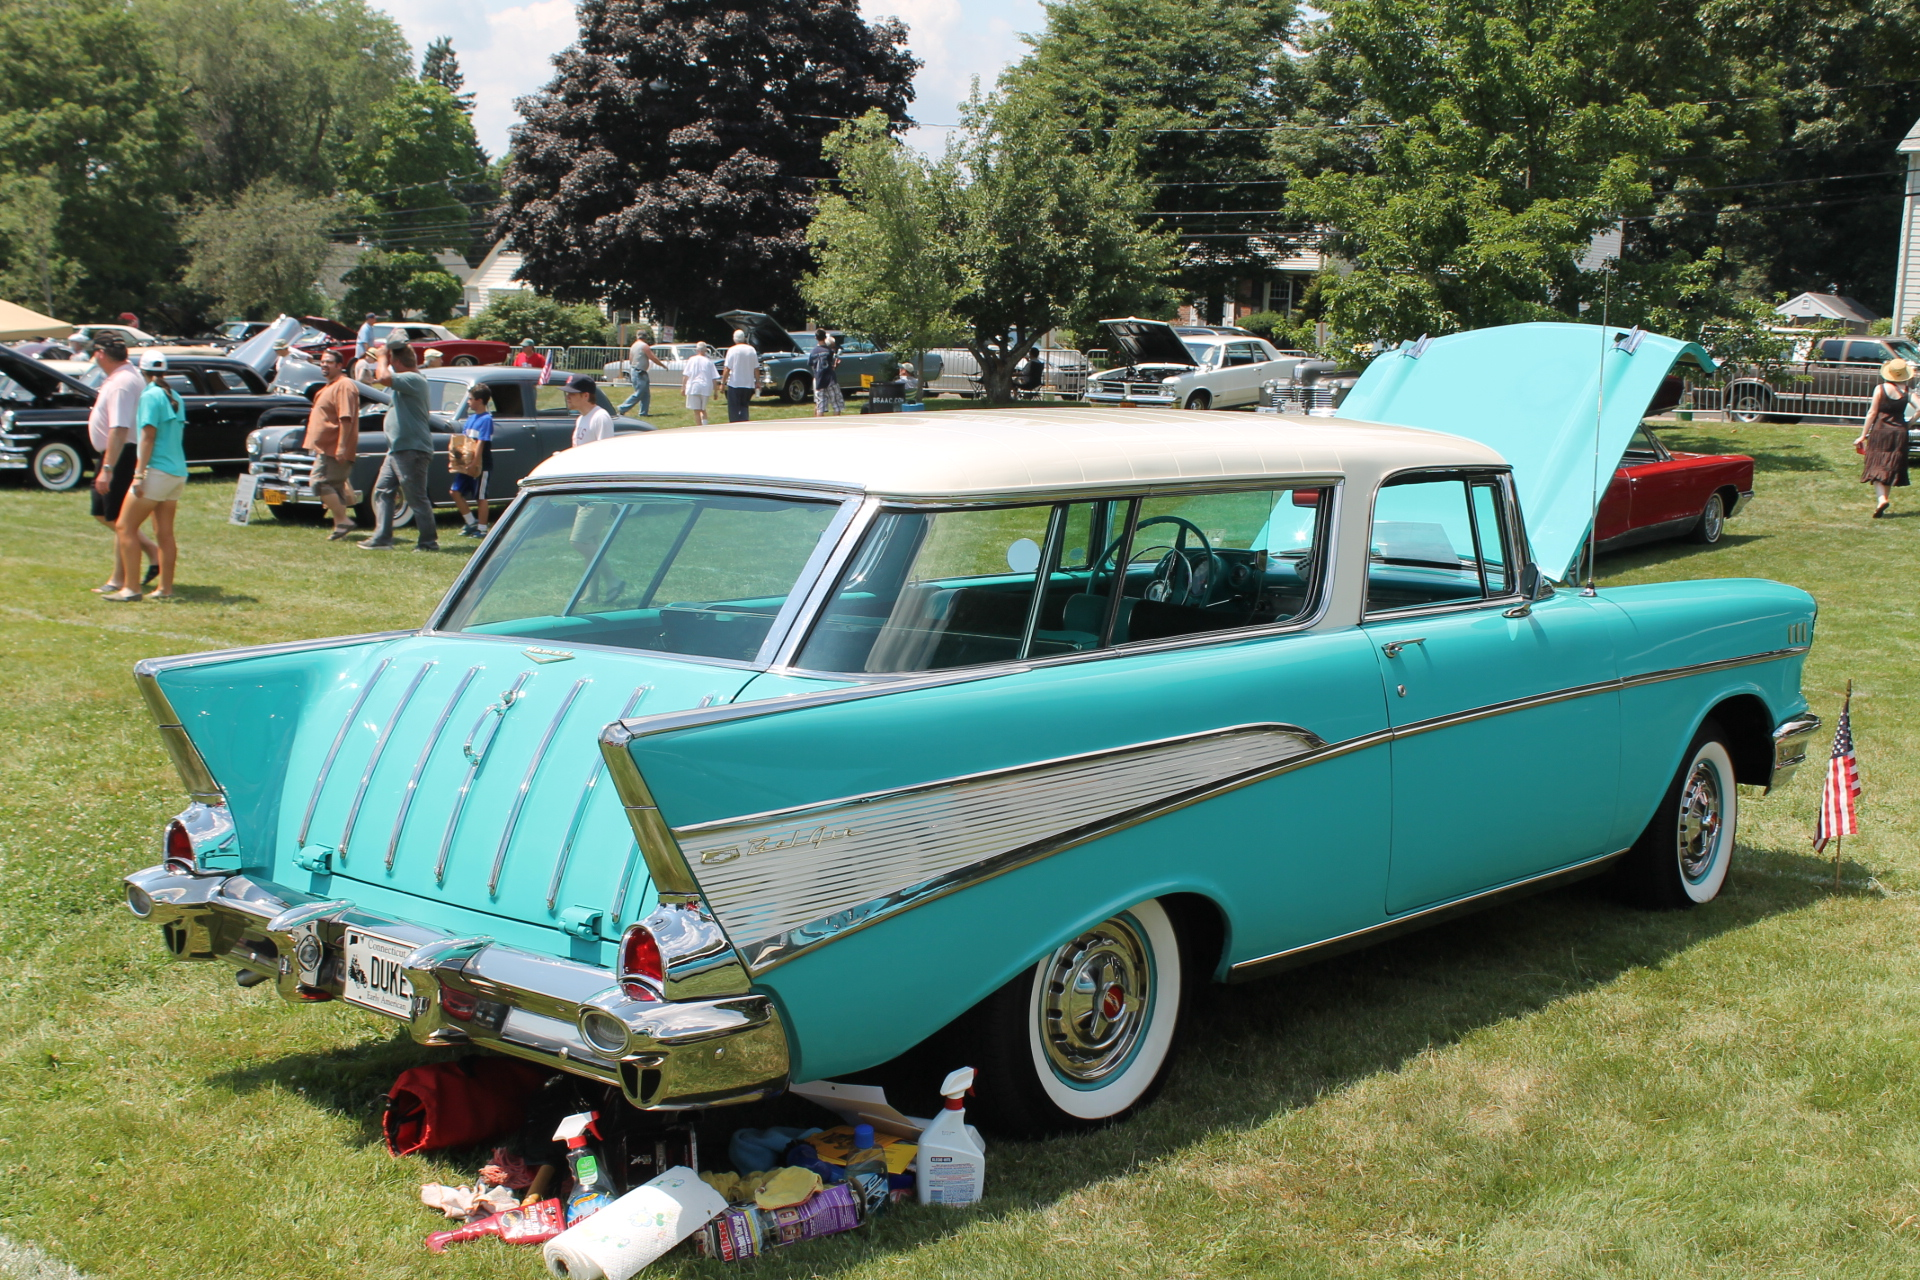 Nomad Car Chevrolet nomad wagon 1957 (1)